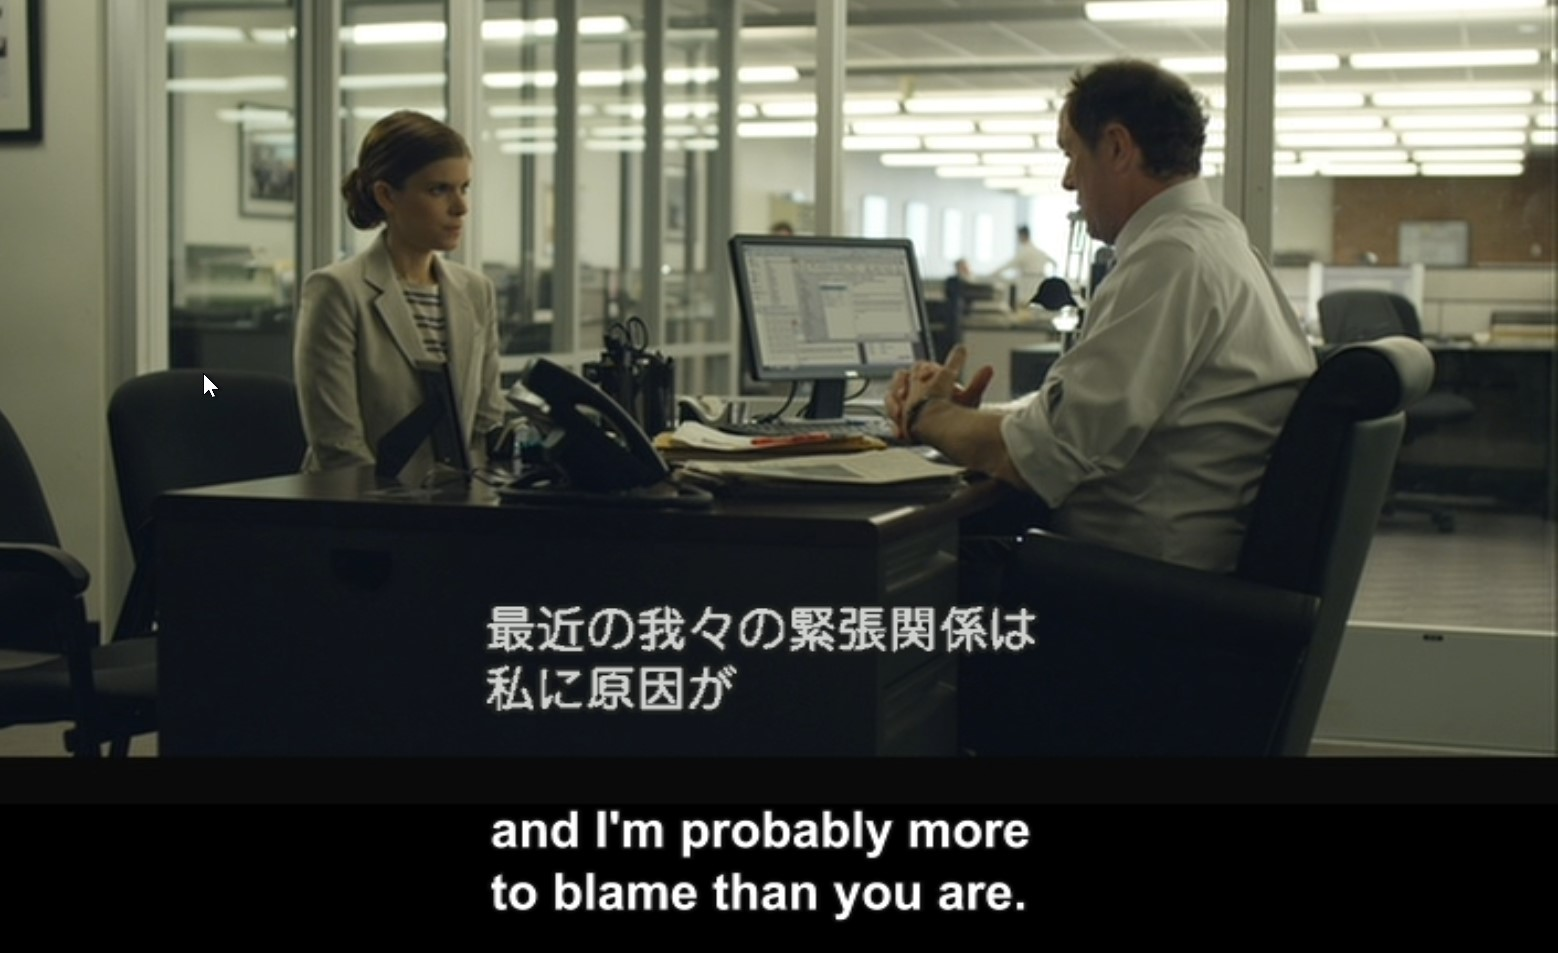 to blameか、to be blamedか?